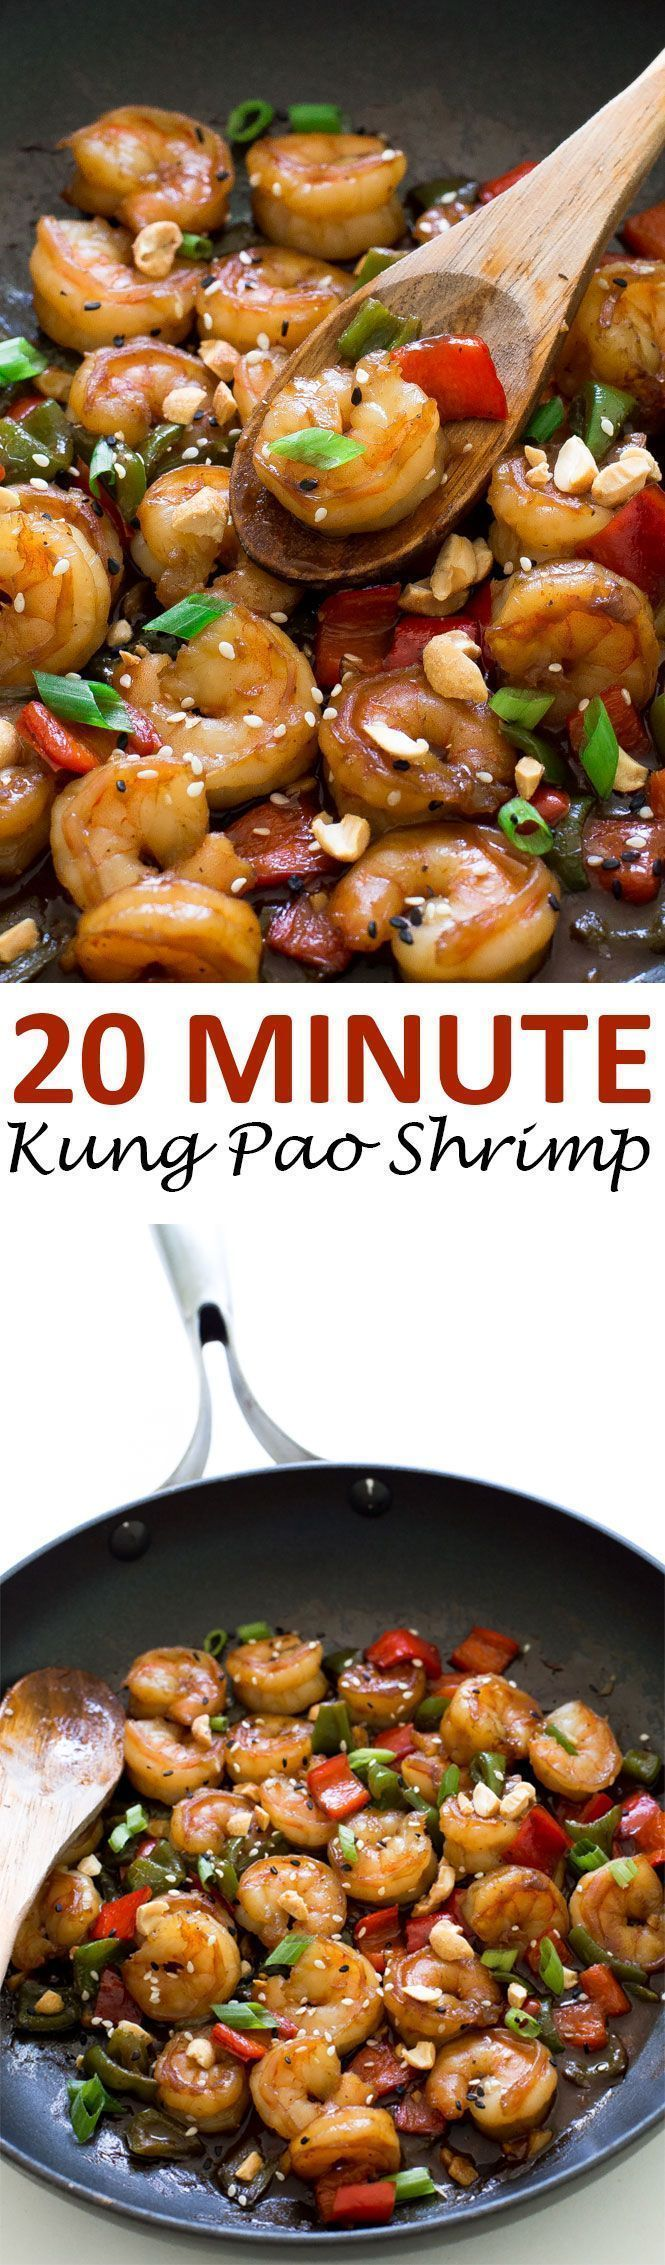 Super Easy Kung Pao Shrimp. Takes less than 20 minutes to make and is so much better and healthier than take out!   chefsavvy.com #recipe #shrimp #kung #pao #dinner